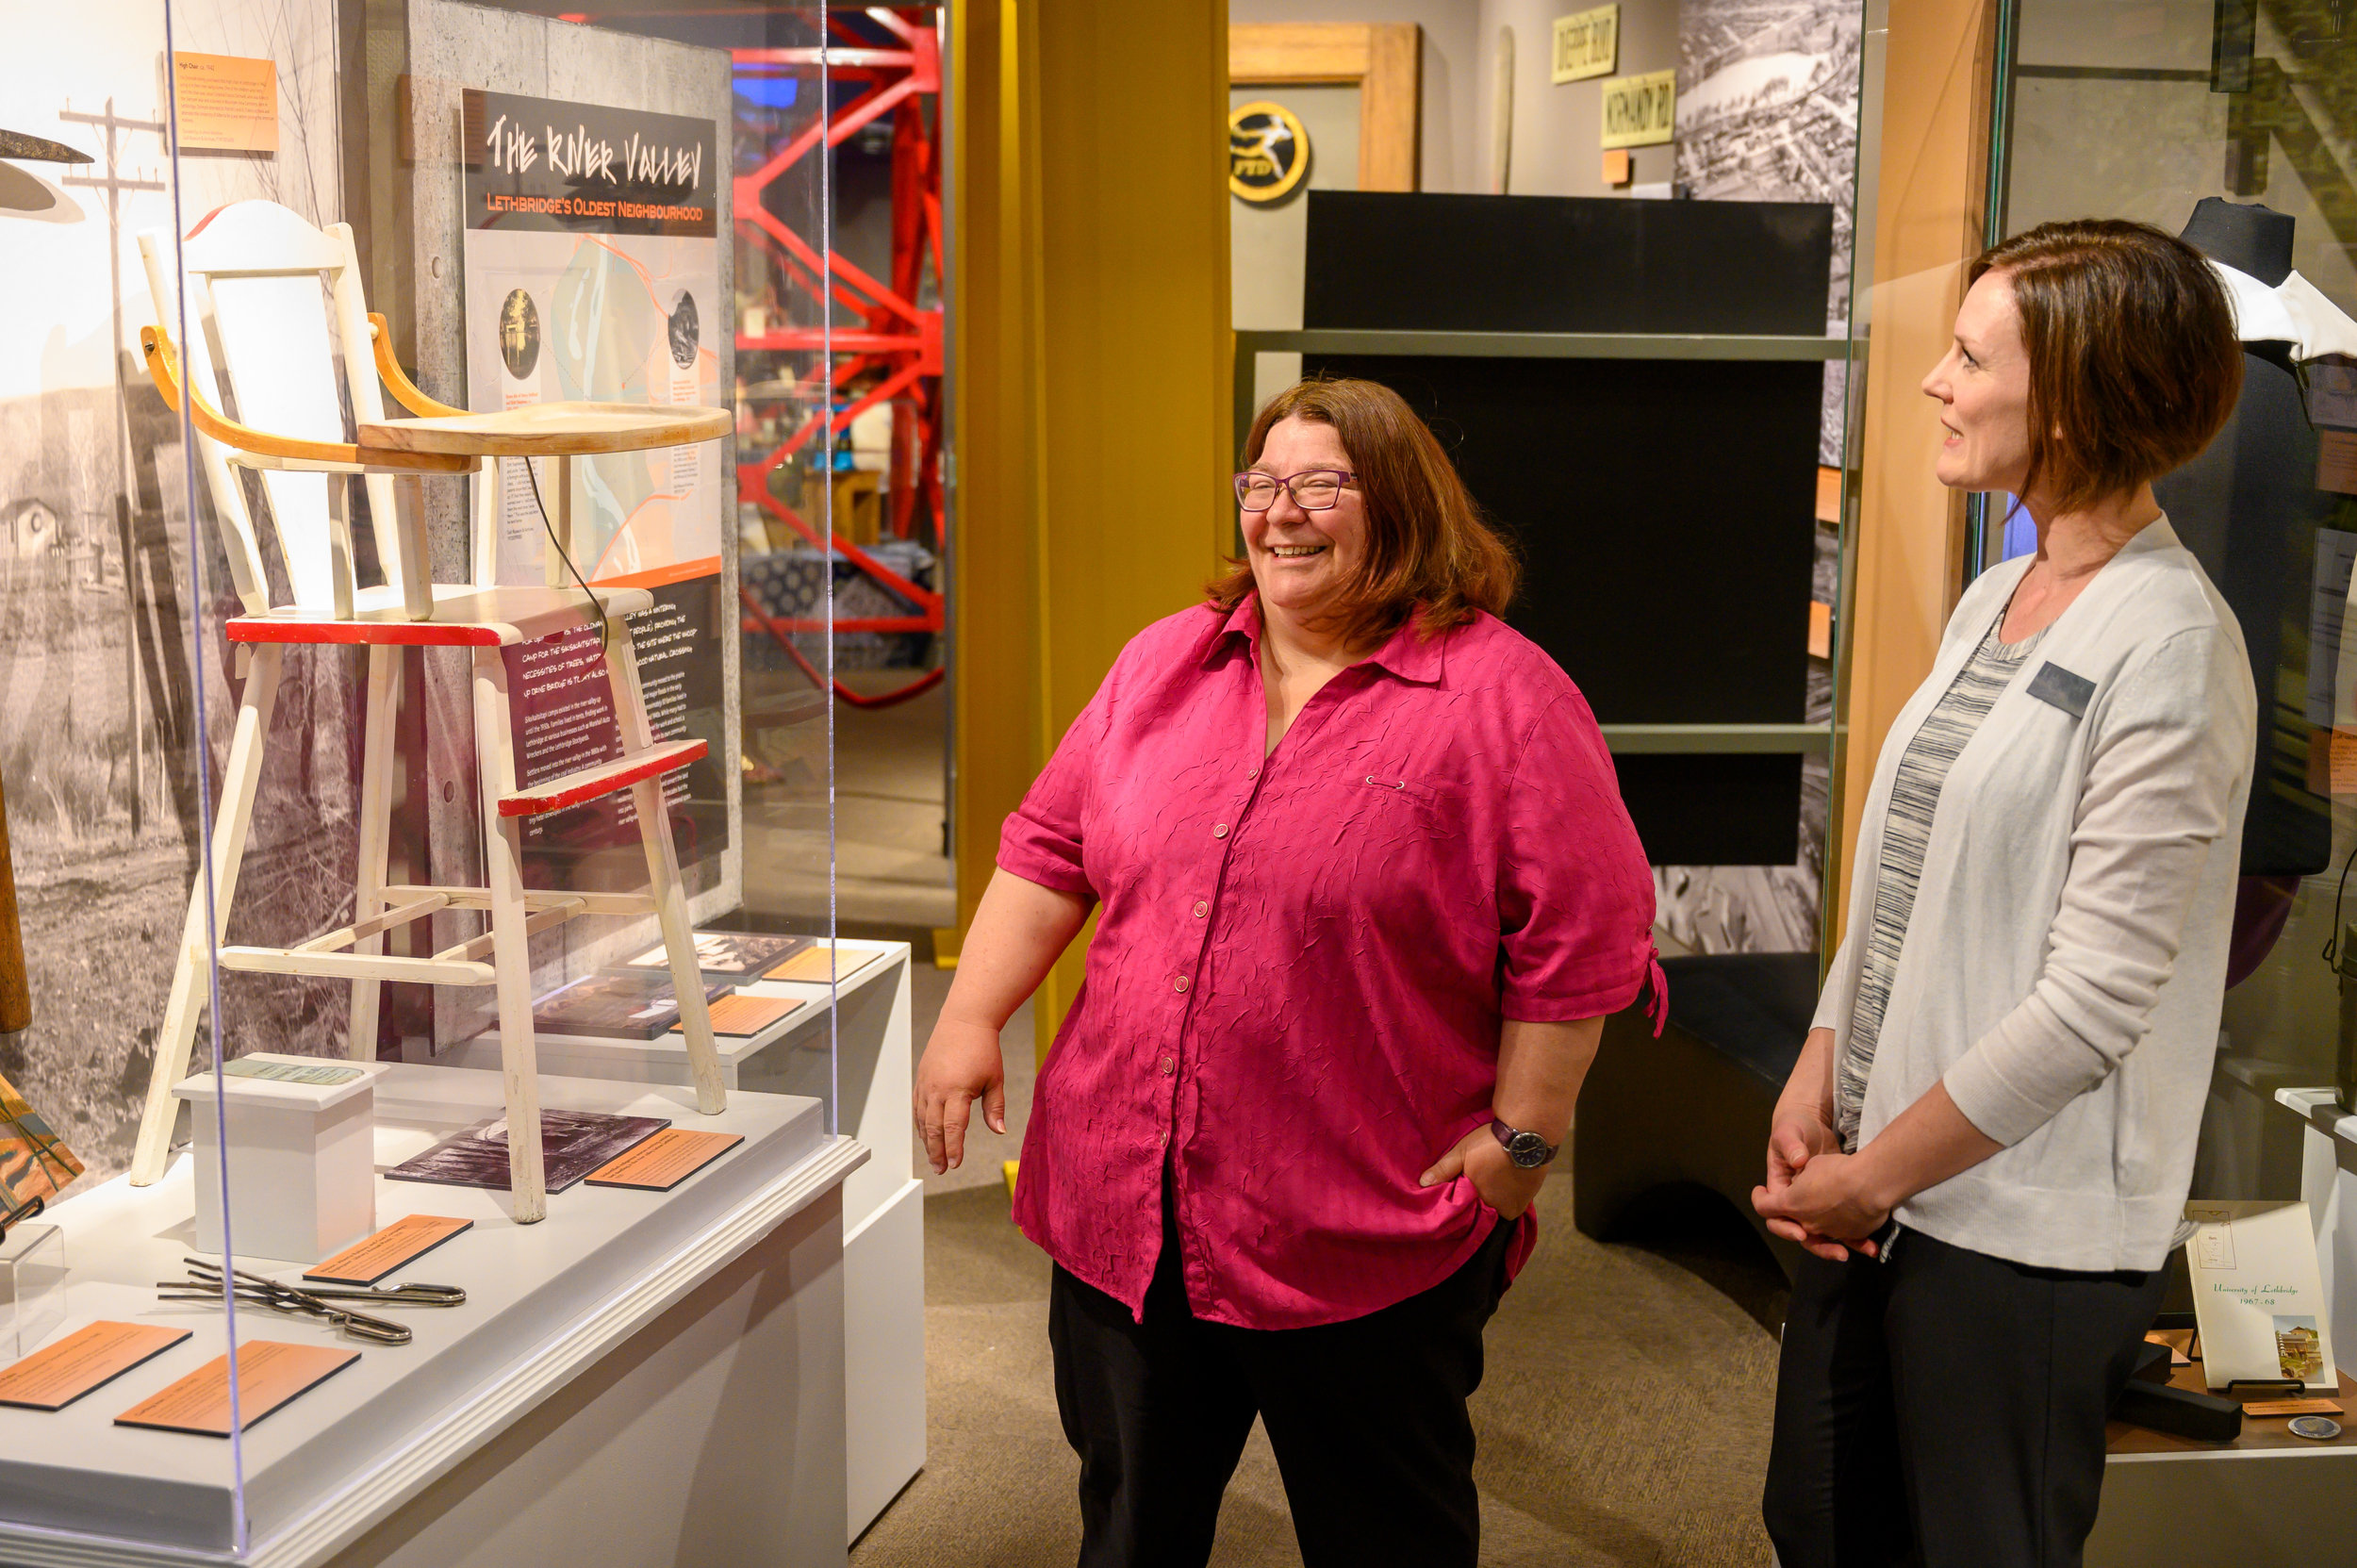 Curator Aimee Benoit and Lethbridge Historical Society President Belinda Crowson examining a display in the exhibit.